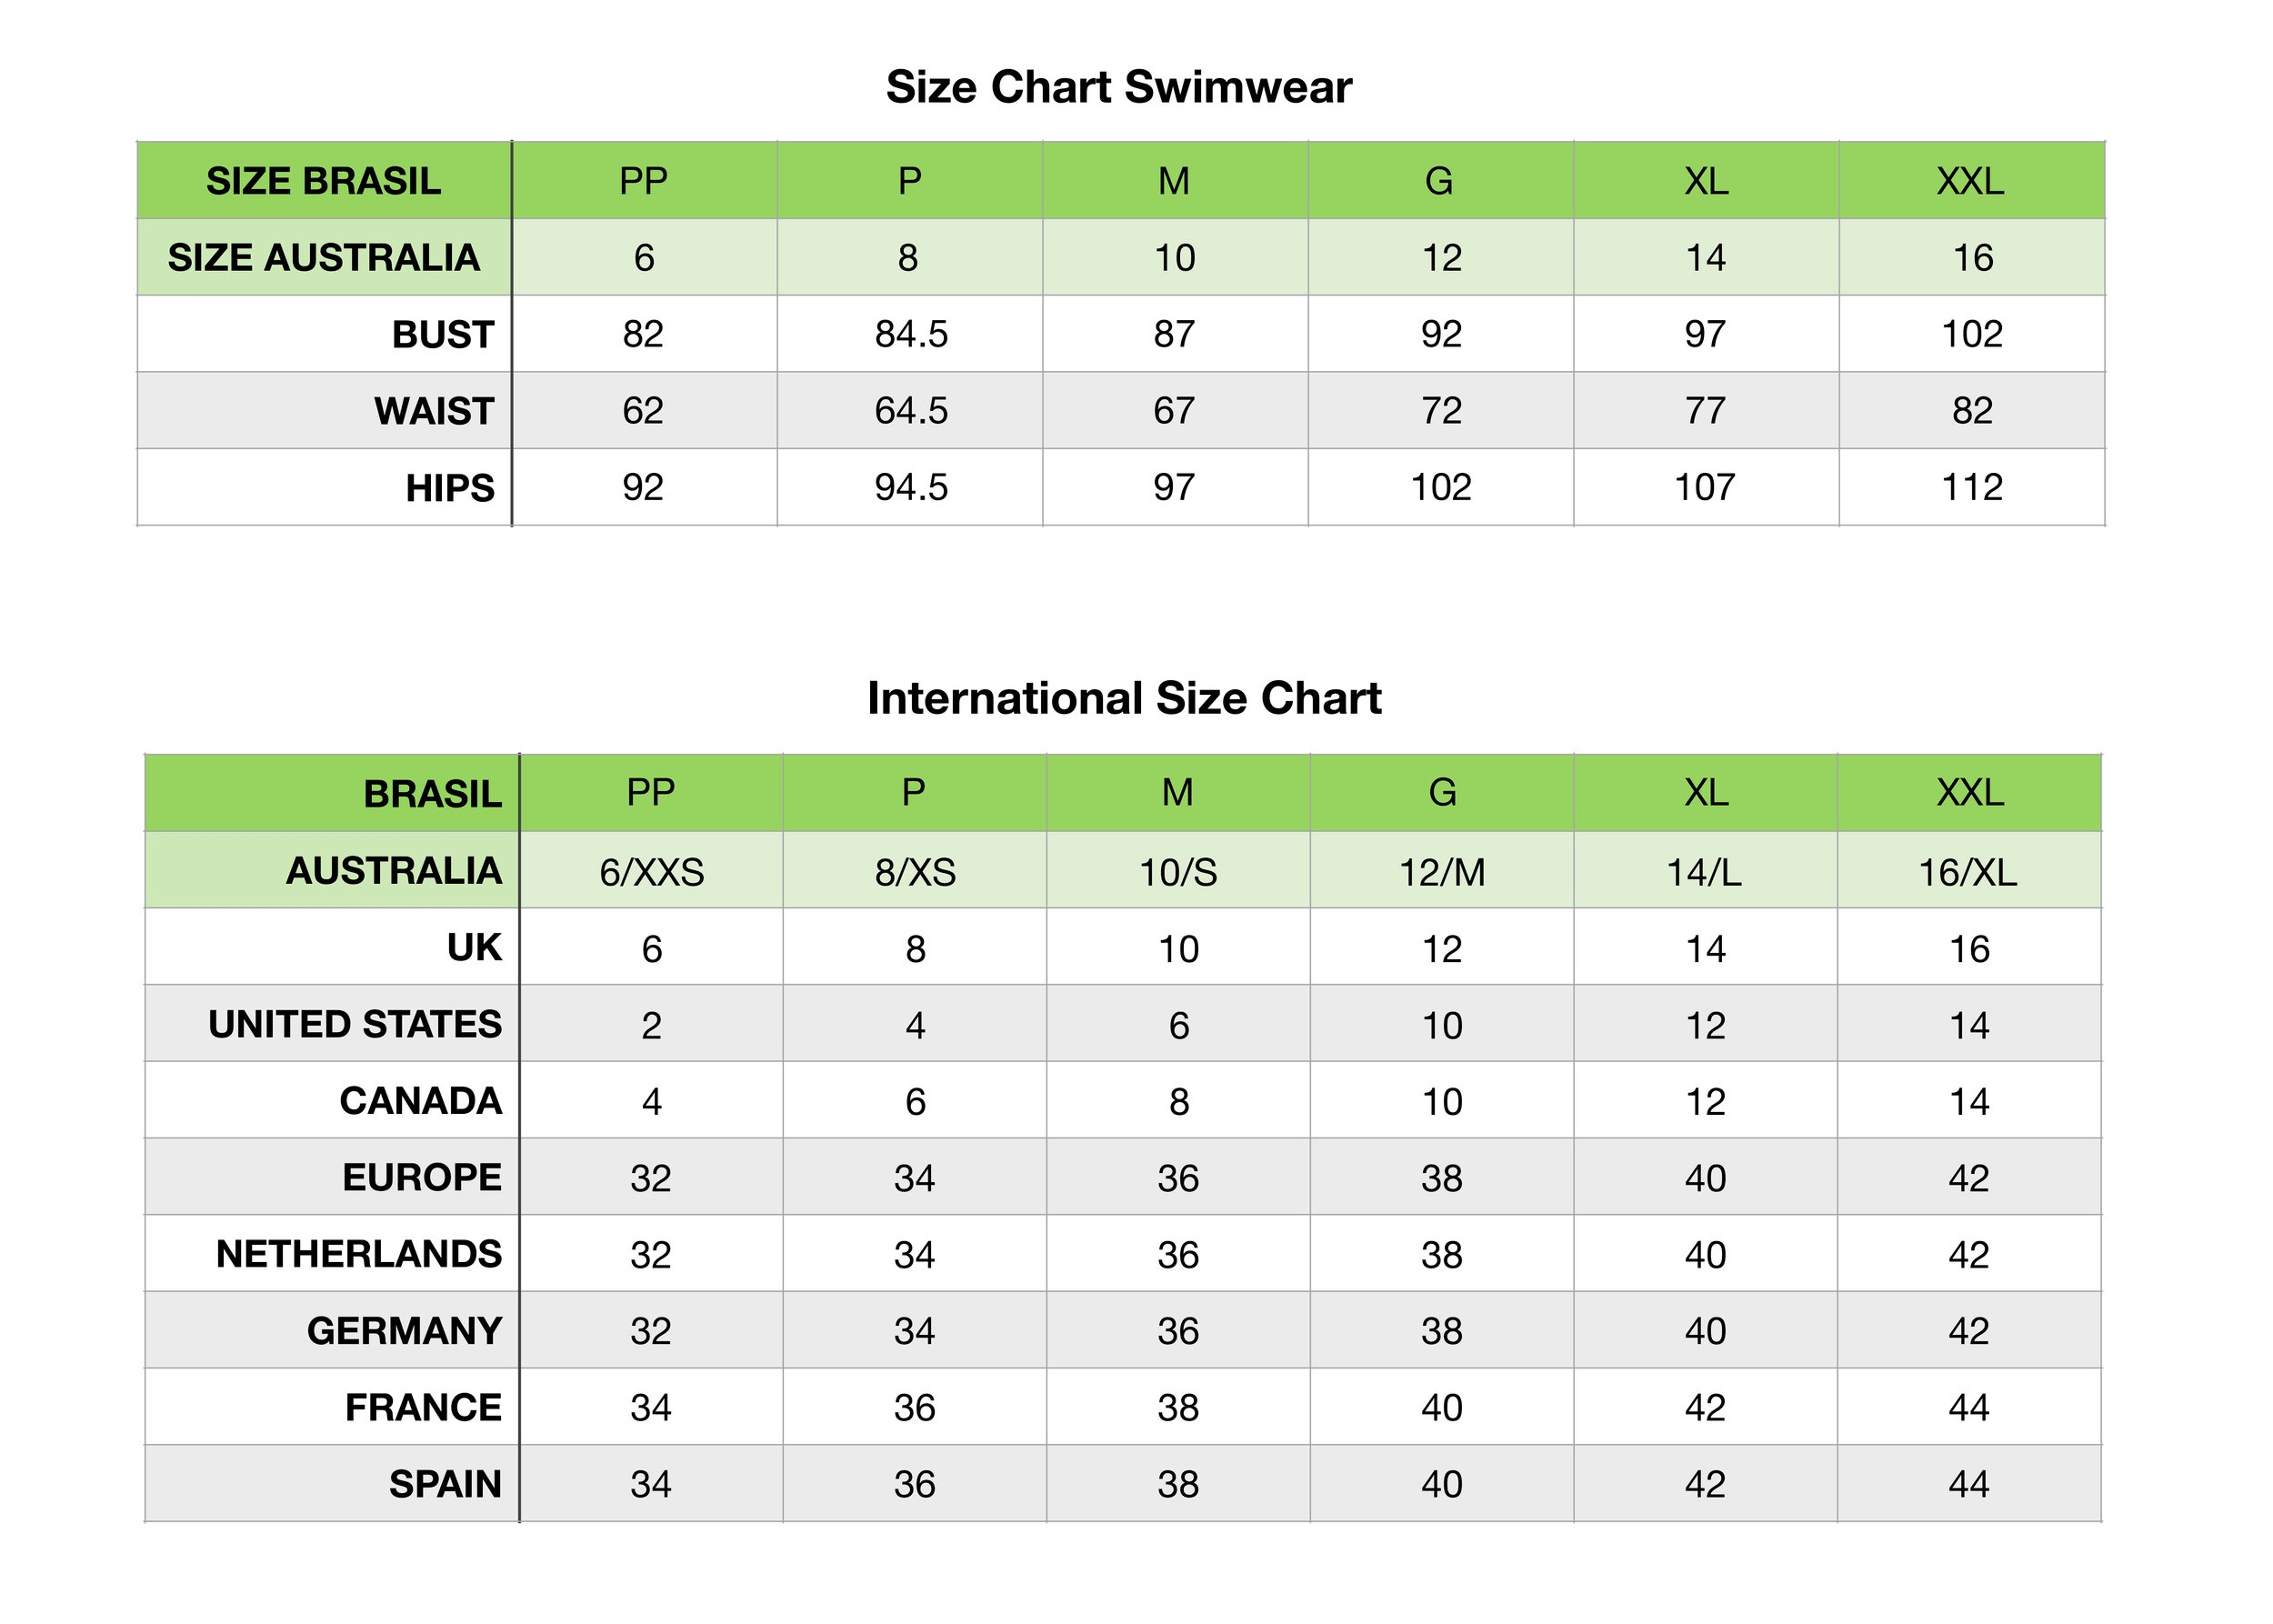 Size+chart+swimwear+USE.jpg